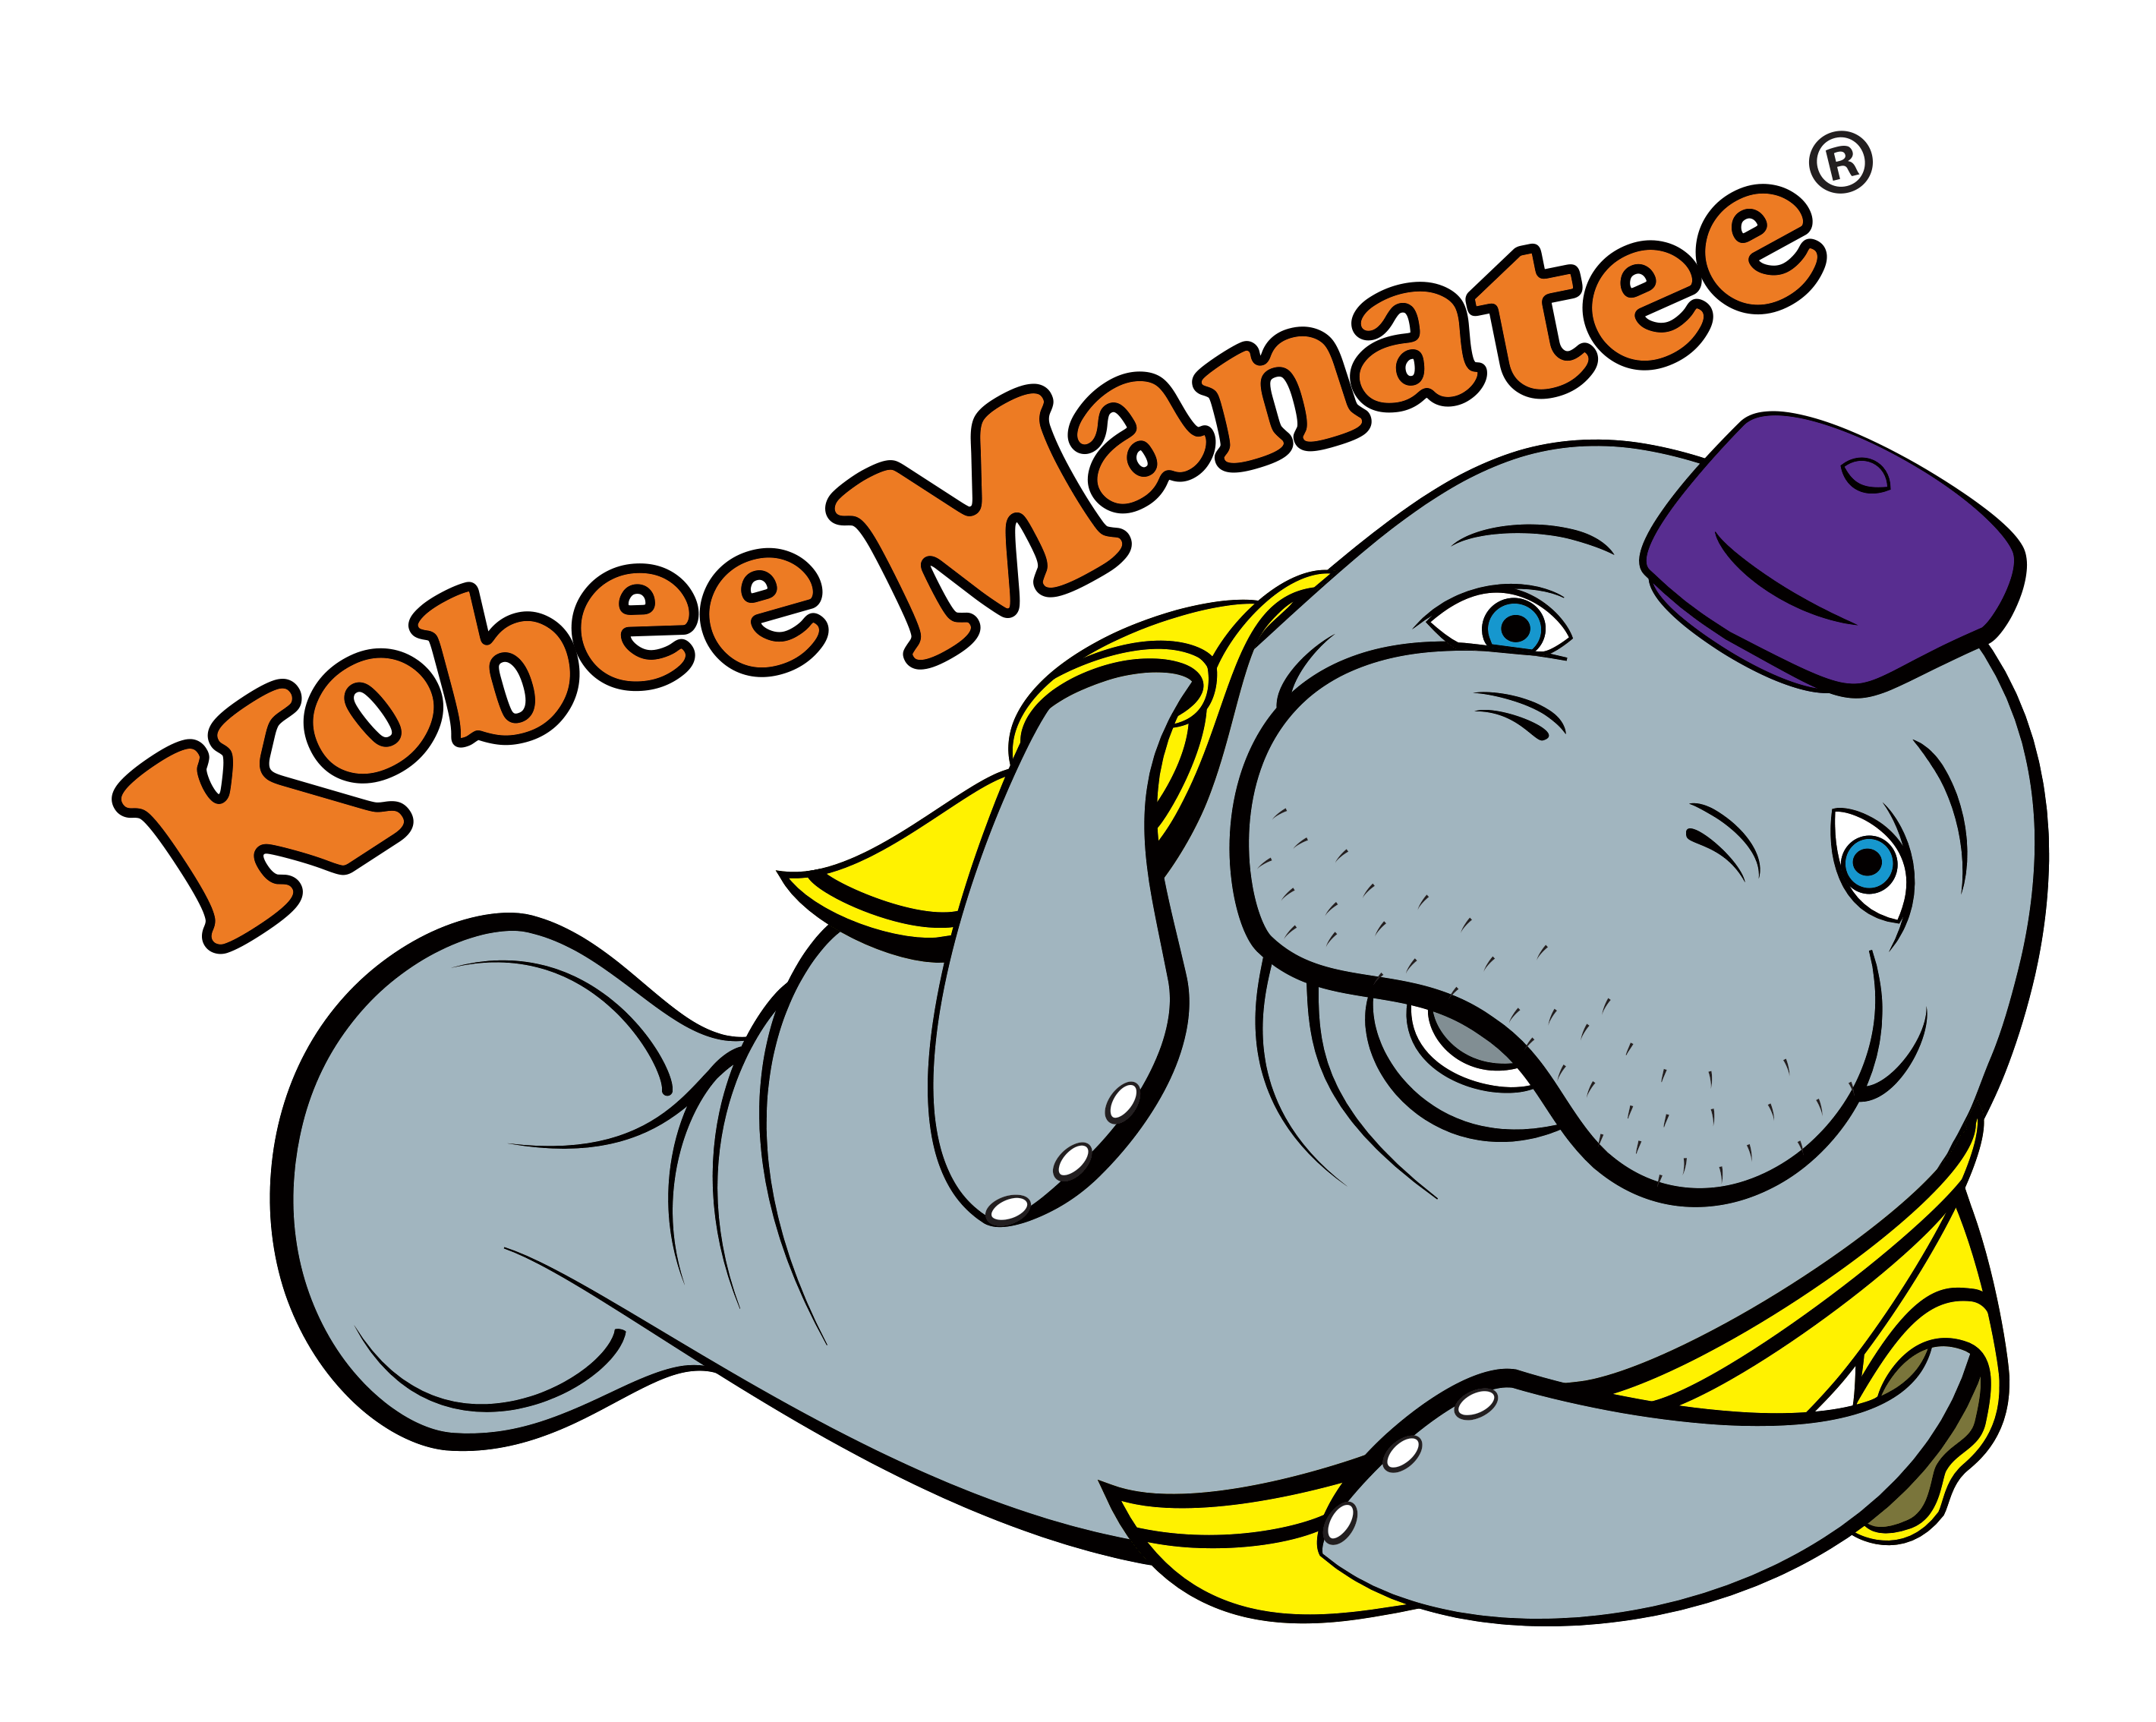 Kobee_Manatee_Logo